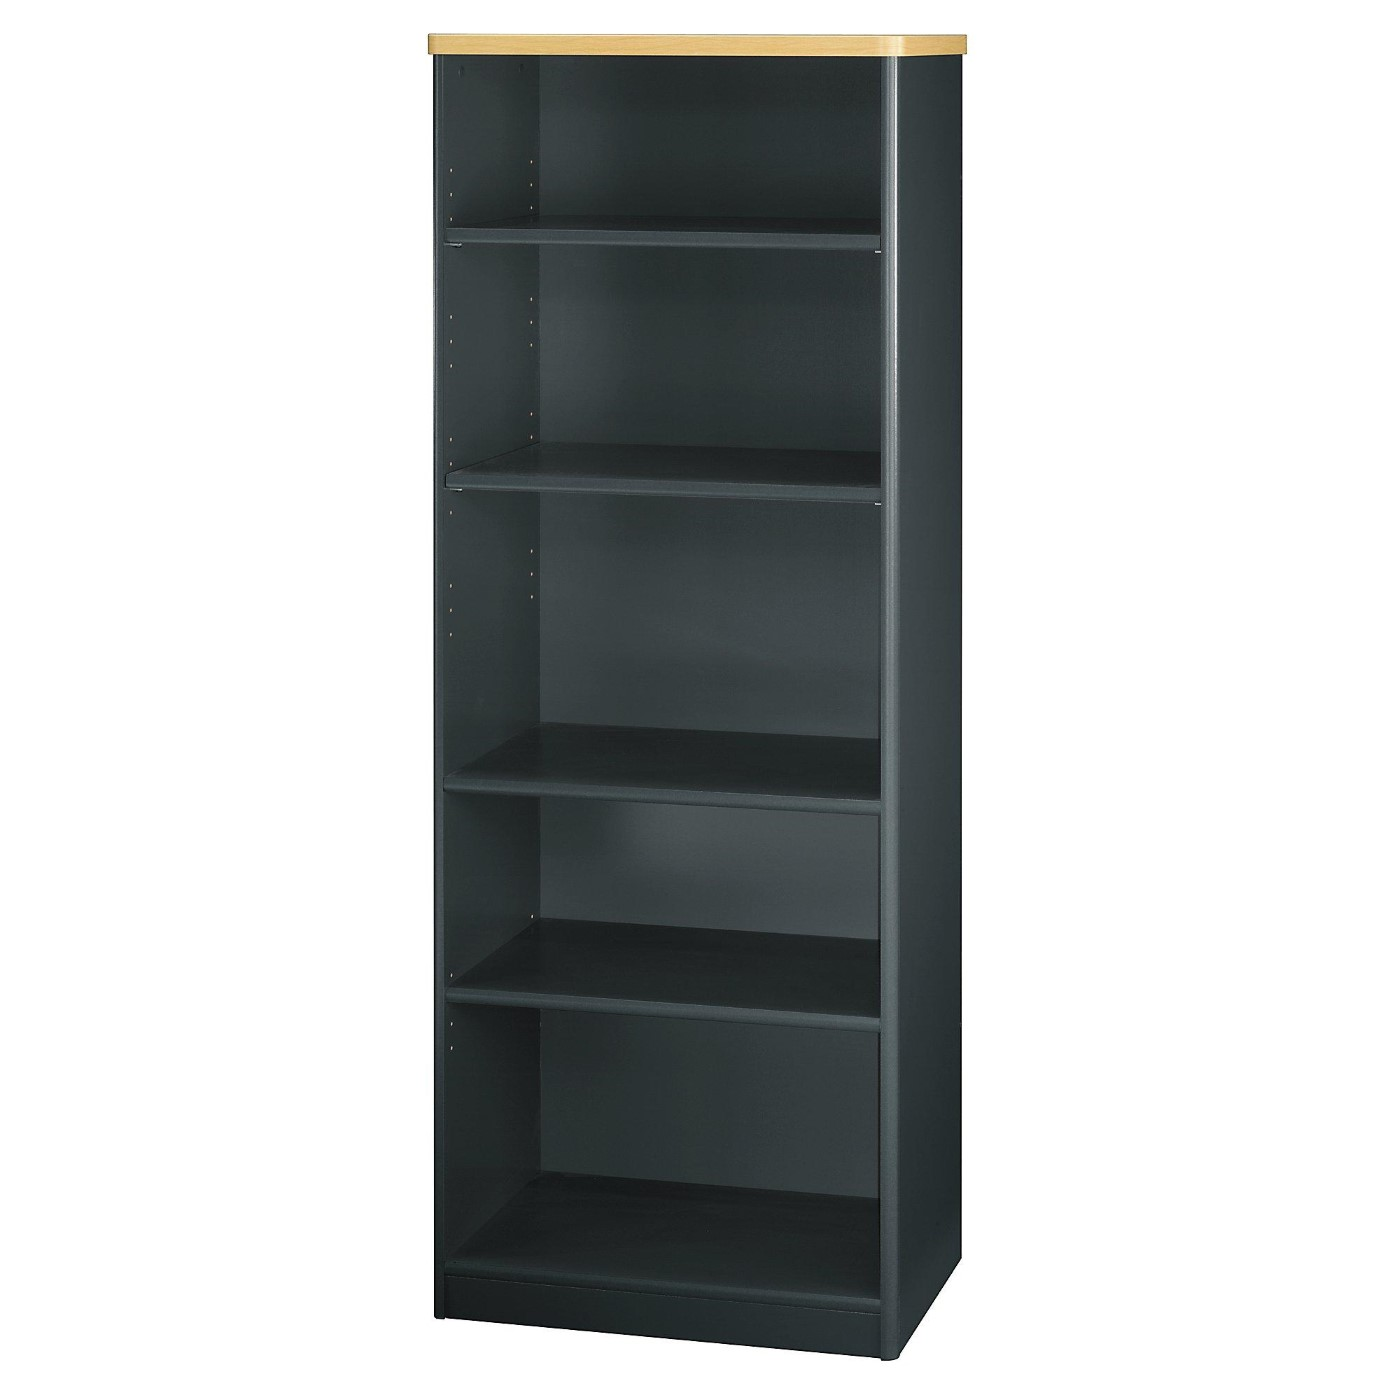 <font color=#c60><b>BUSH BUSINESS FURNITURE SERIES A 26W 5 SHELF BOOKCASE. FREE SHIPPING</font></b></font></b>